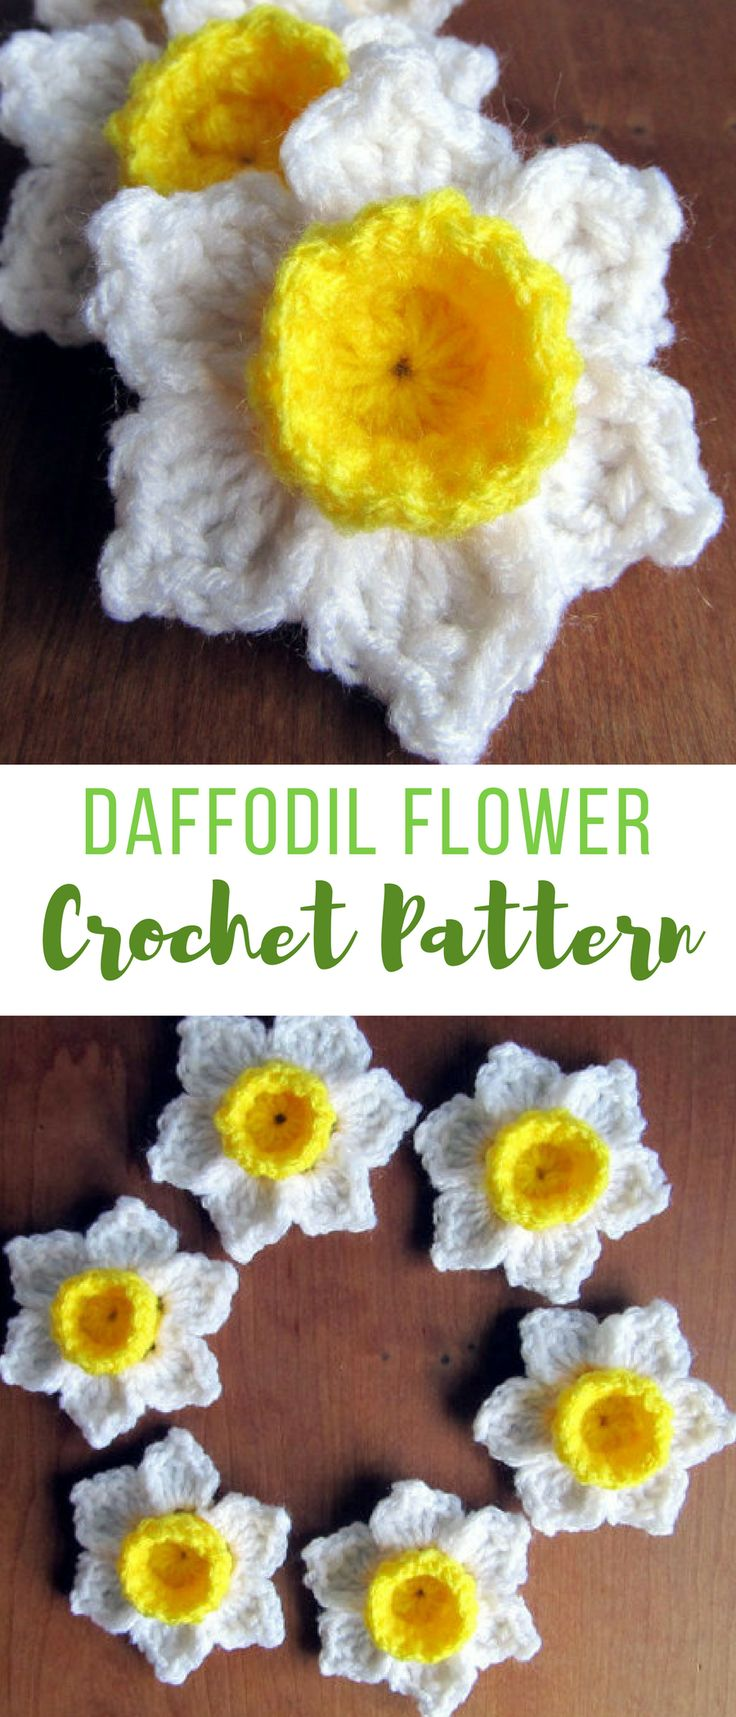 these crochet daffodils are amazing - my brithday month flower, i've always loved them - what a great flower crochet pattern! #crochetflowerpattern #crochetflowers #crochetflowerspattern #crochetdaffodil #crochet #affiliate #crochetedflowers